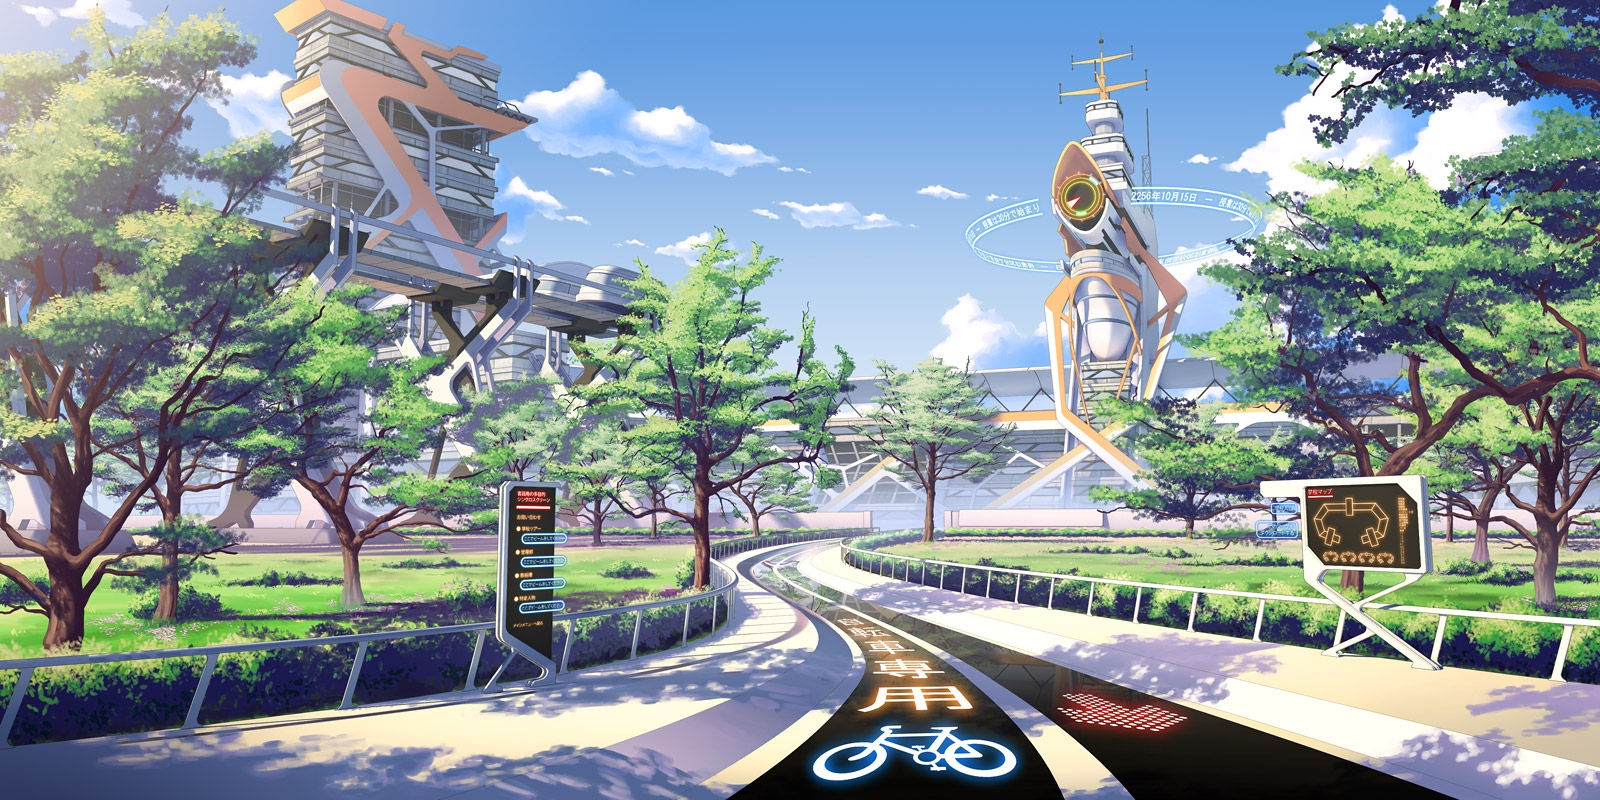 City animation backgrounds